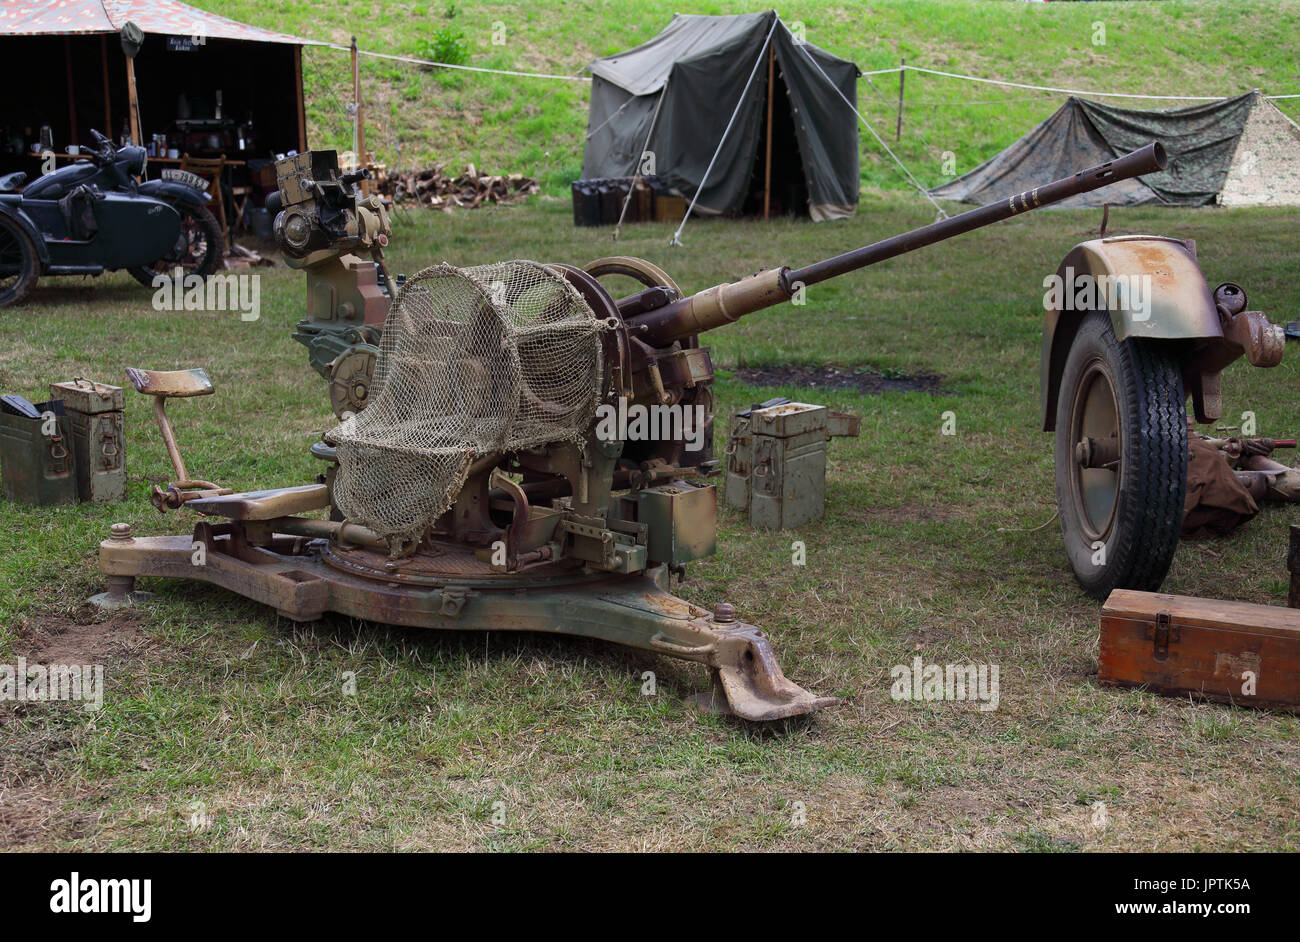 A well preserved German automatic anti aircraft gun form world war 2 on display at Beltring, the wheels it normally travels on have been dismounted. - Stock Image